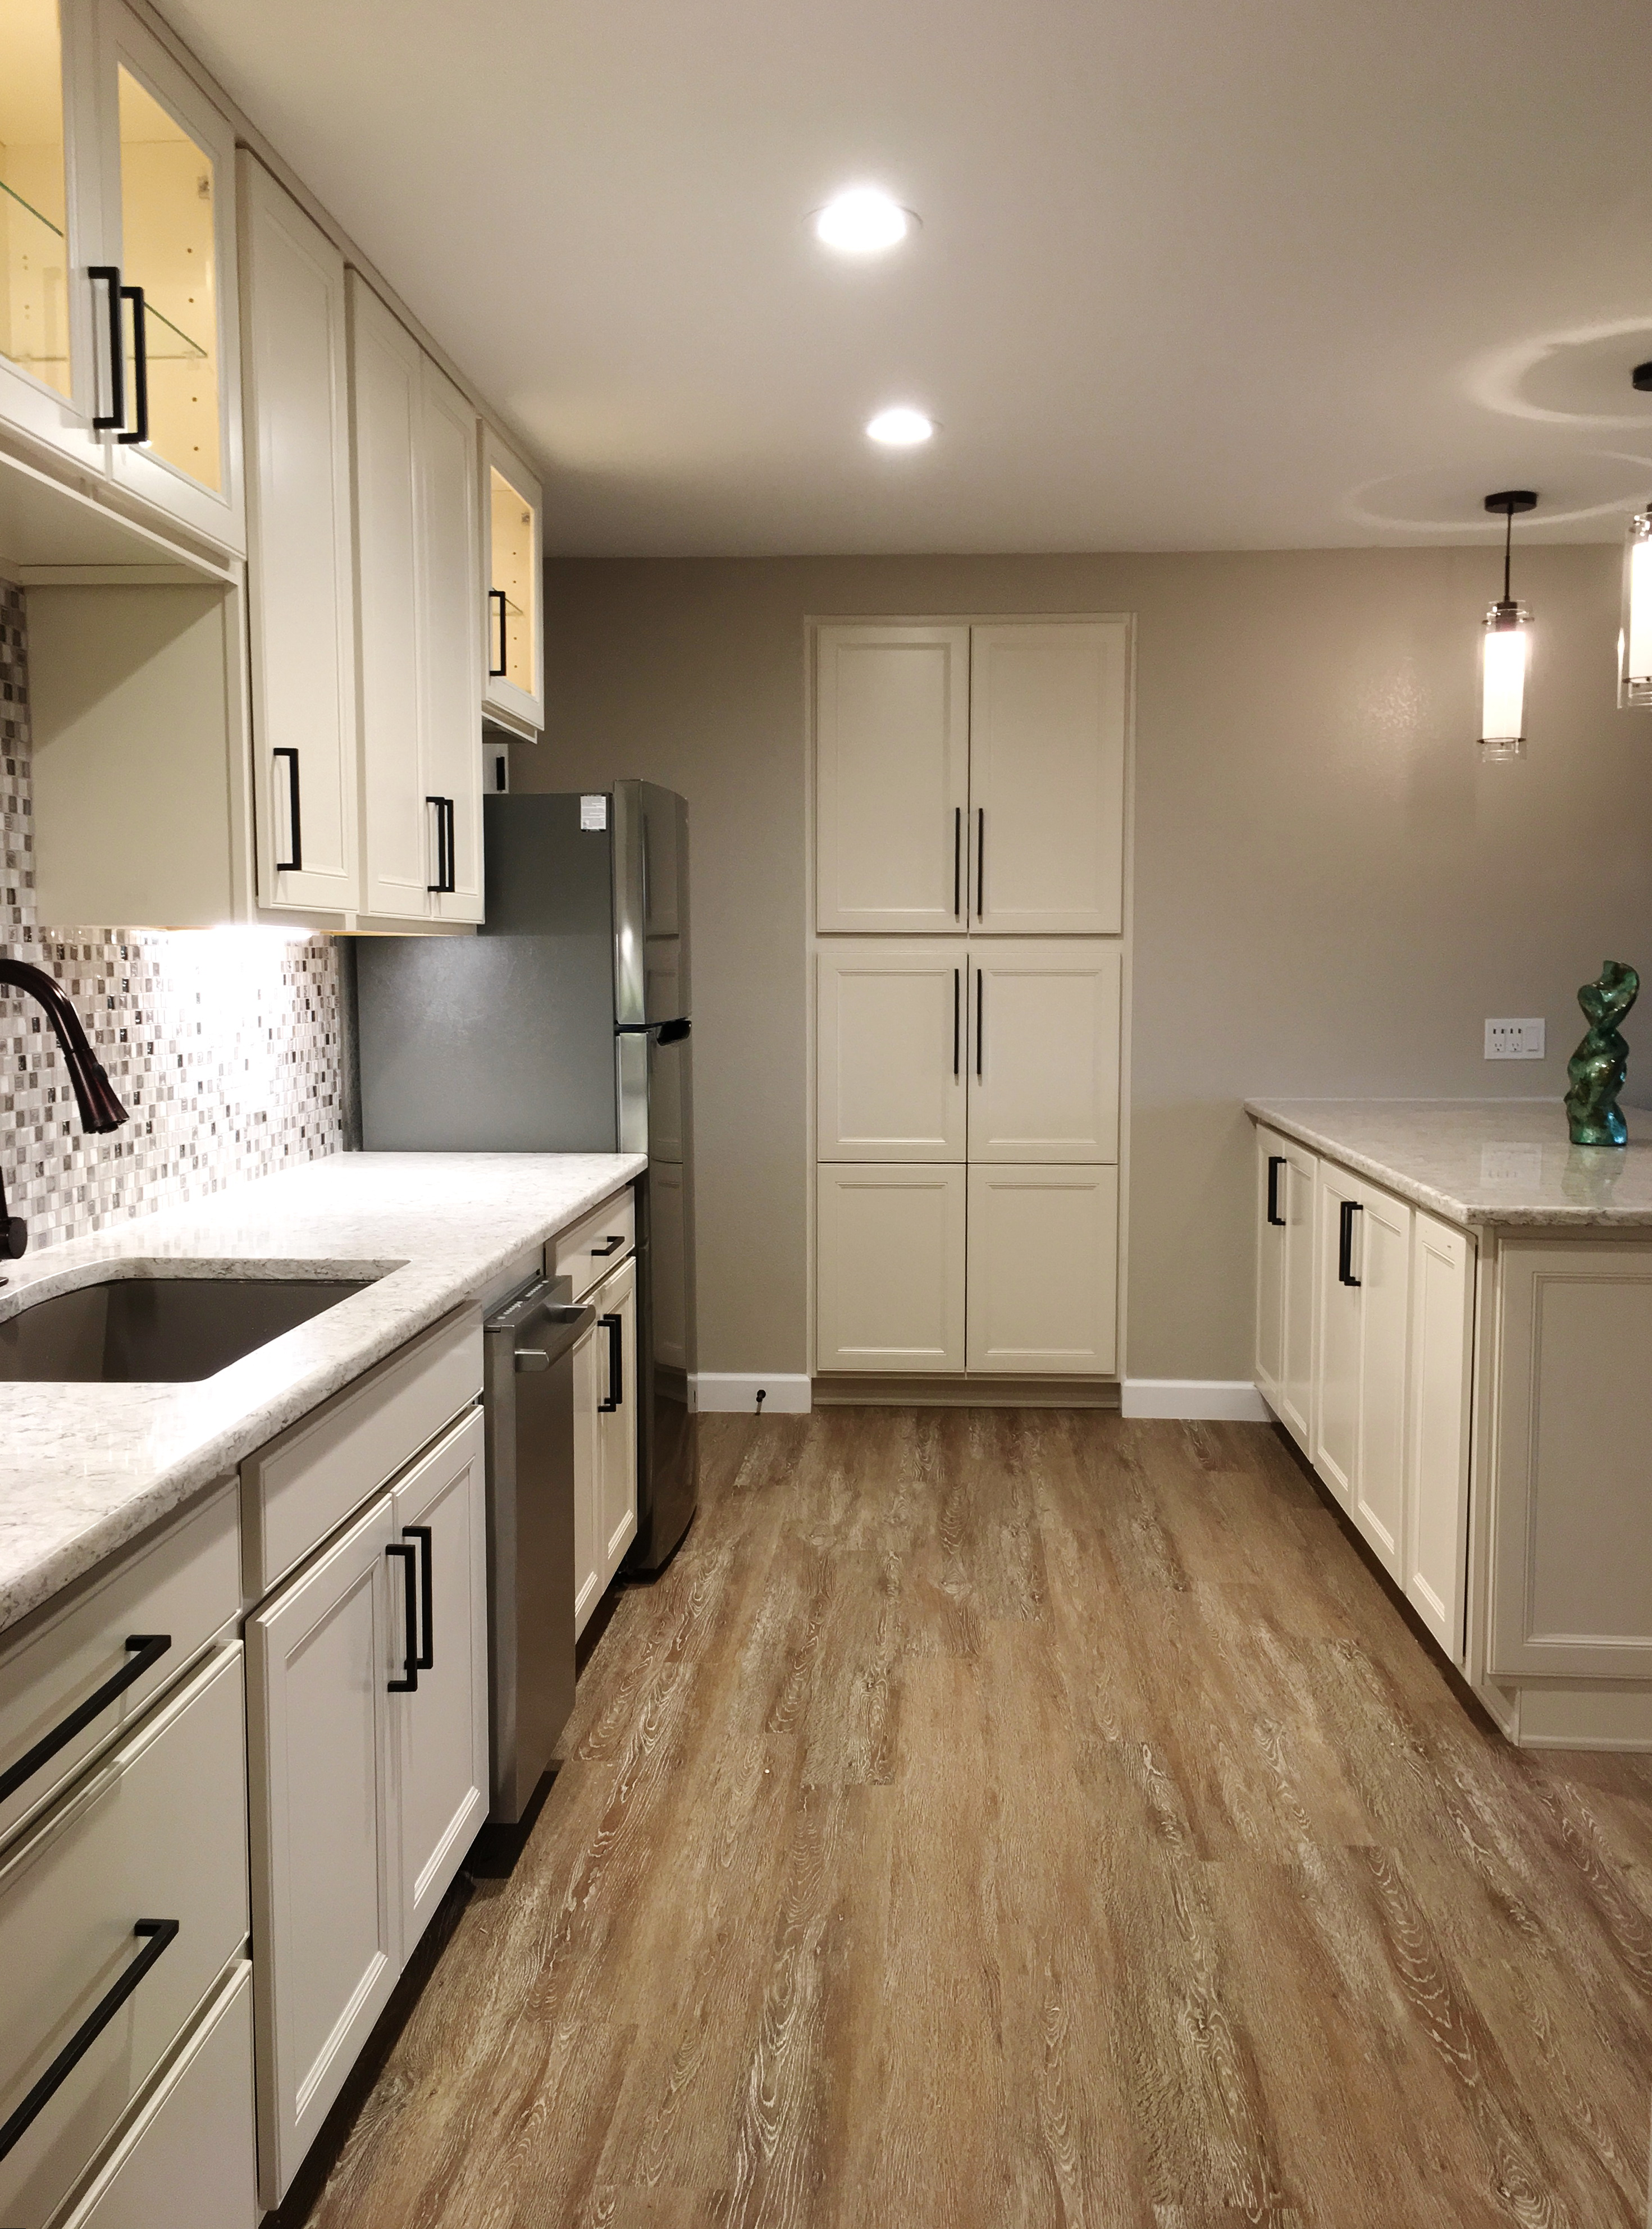 Kitchen completed